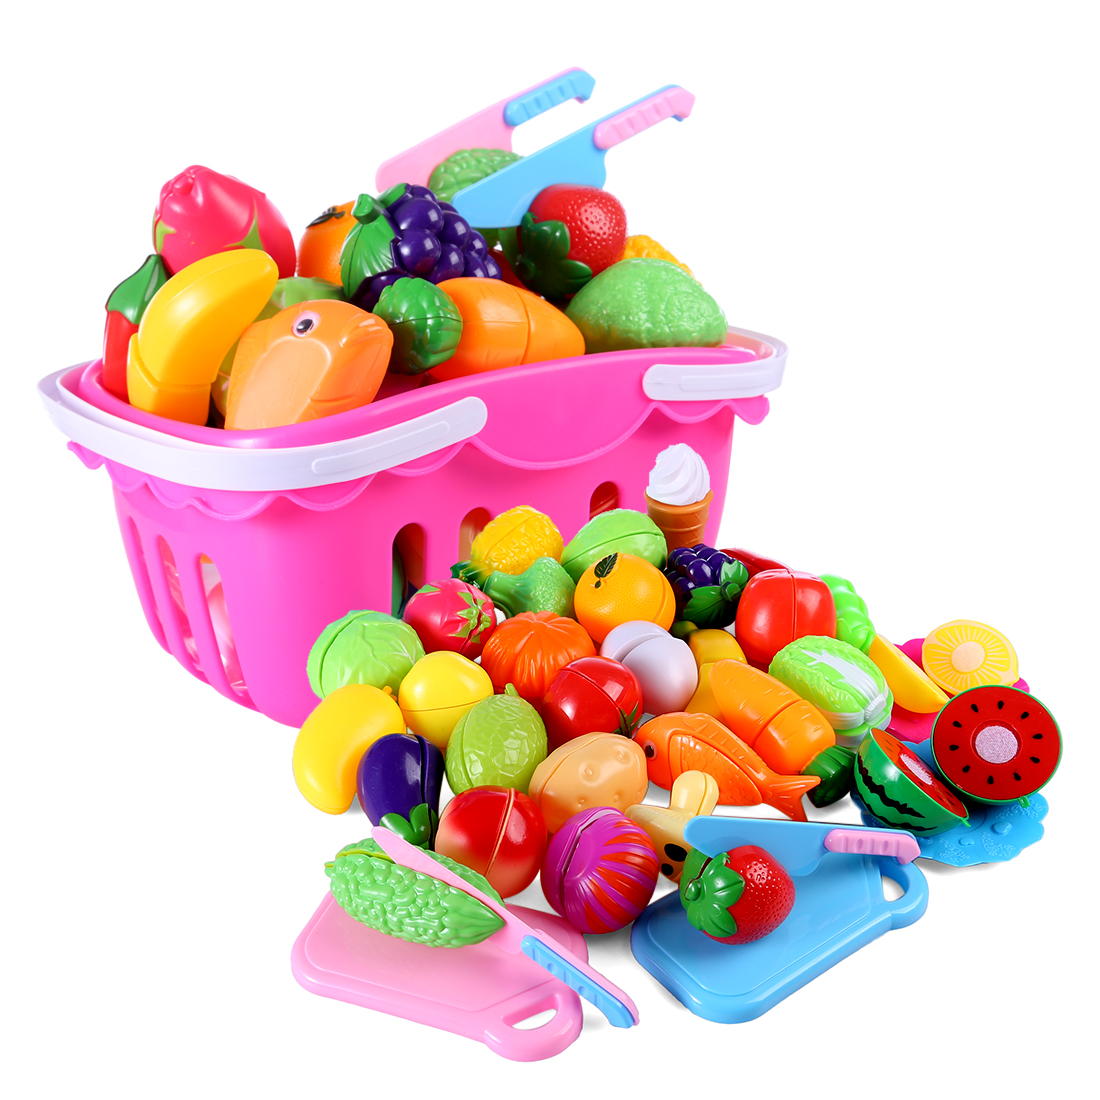 37pcs Classic Game Simulation Kitchen Series Toys Cutting Fruit And Vegetable Toys Montessori Early Education Gifts With Basket